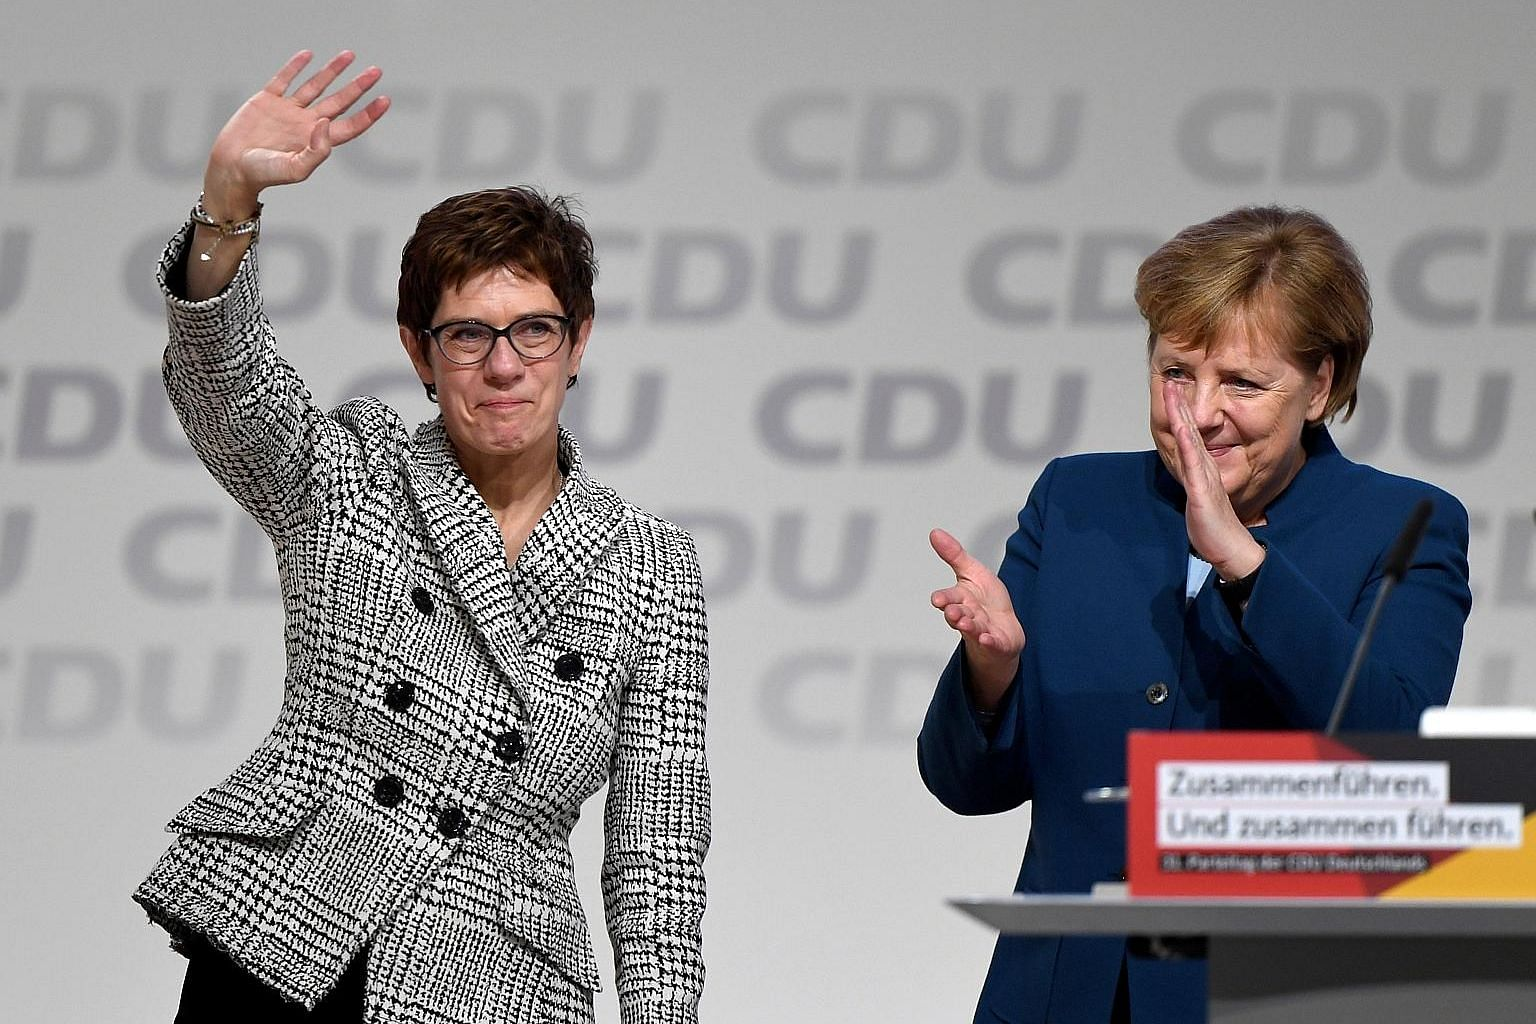 An elated Annegret Kramp-Karrenbauer waving next to German Chancellor Angela Merkel after being elected as the party leader during the Christian Democratic Union party congress in Hamburg, Germany, yesterday.